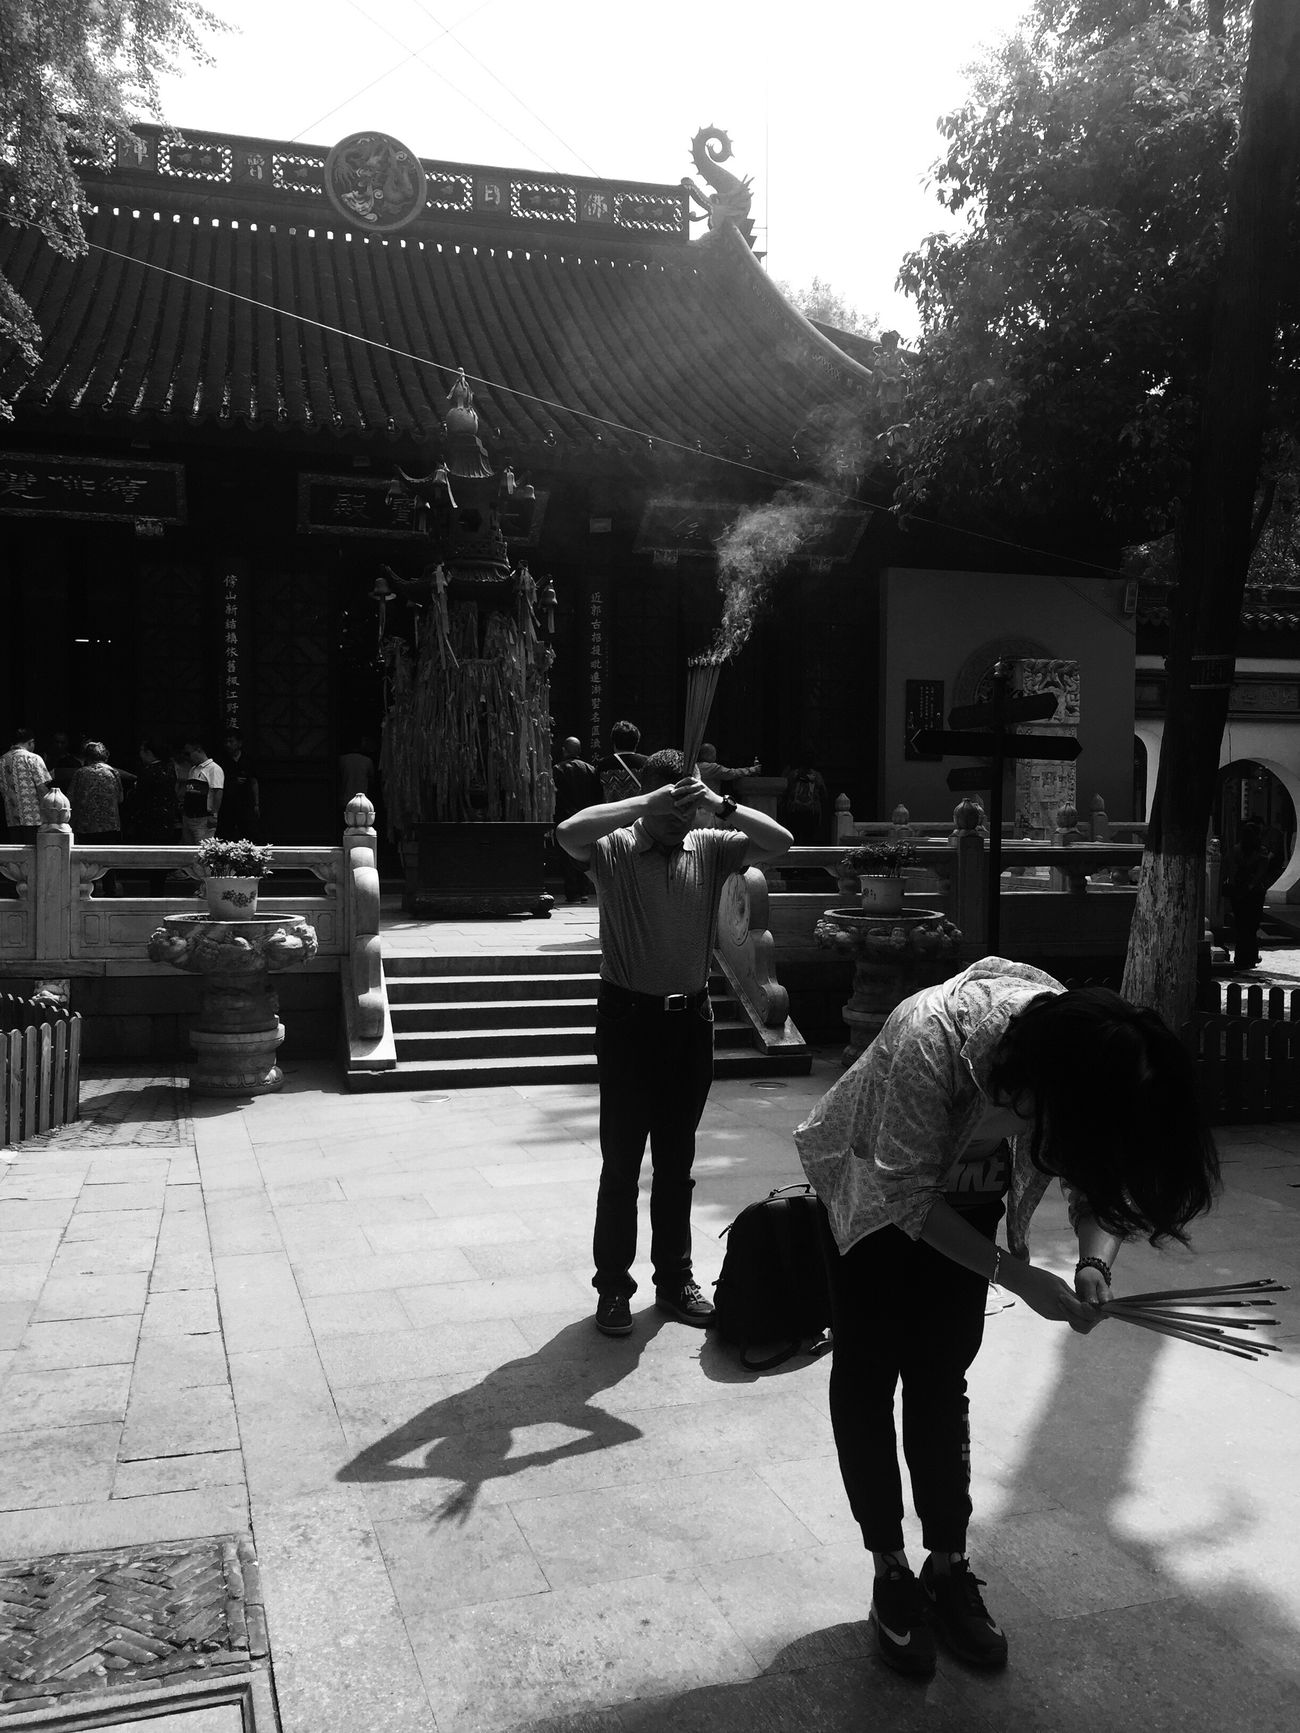 Suzhou Hanshan Temple Temple China Burning Blackandwhite IPhoneography Iphone6 Traveling People People Photography Human Representation EyeEm EyeEm Best Shots